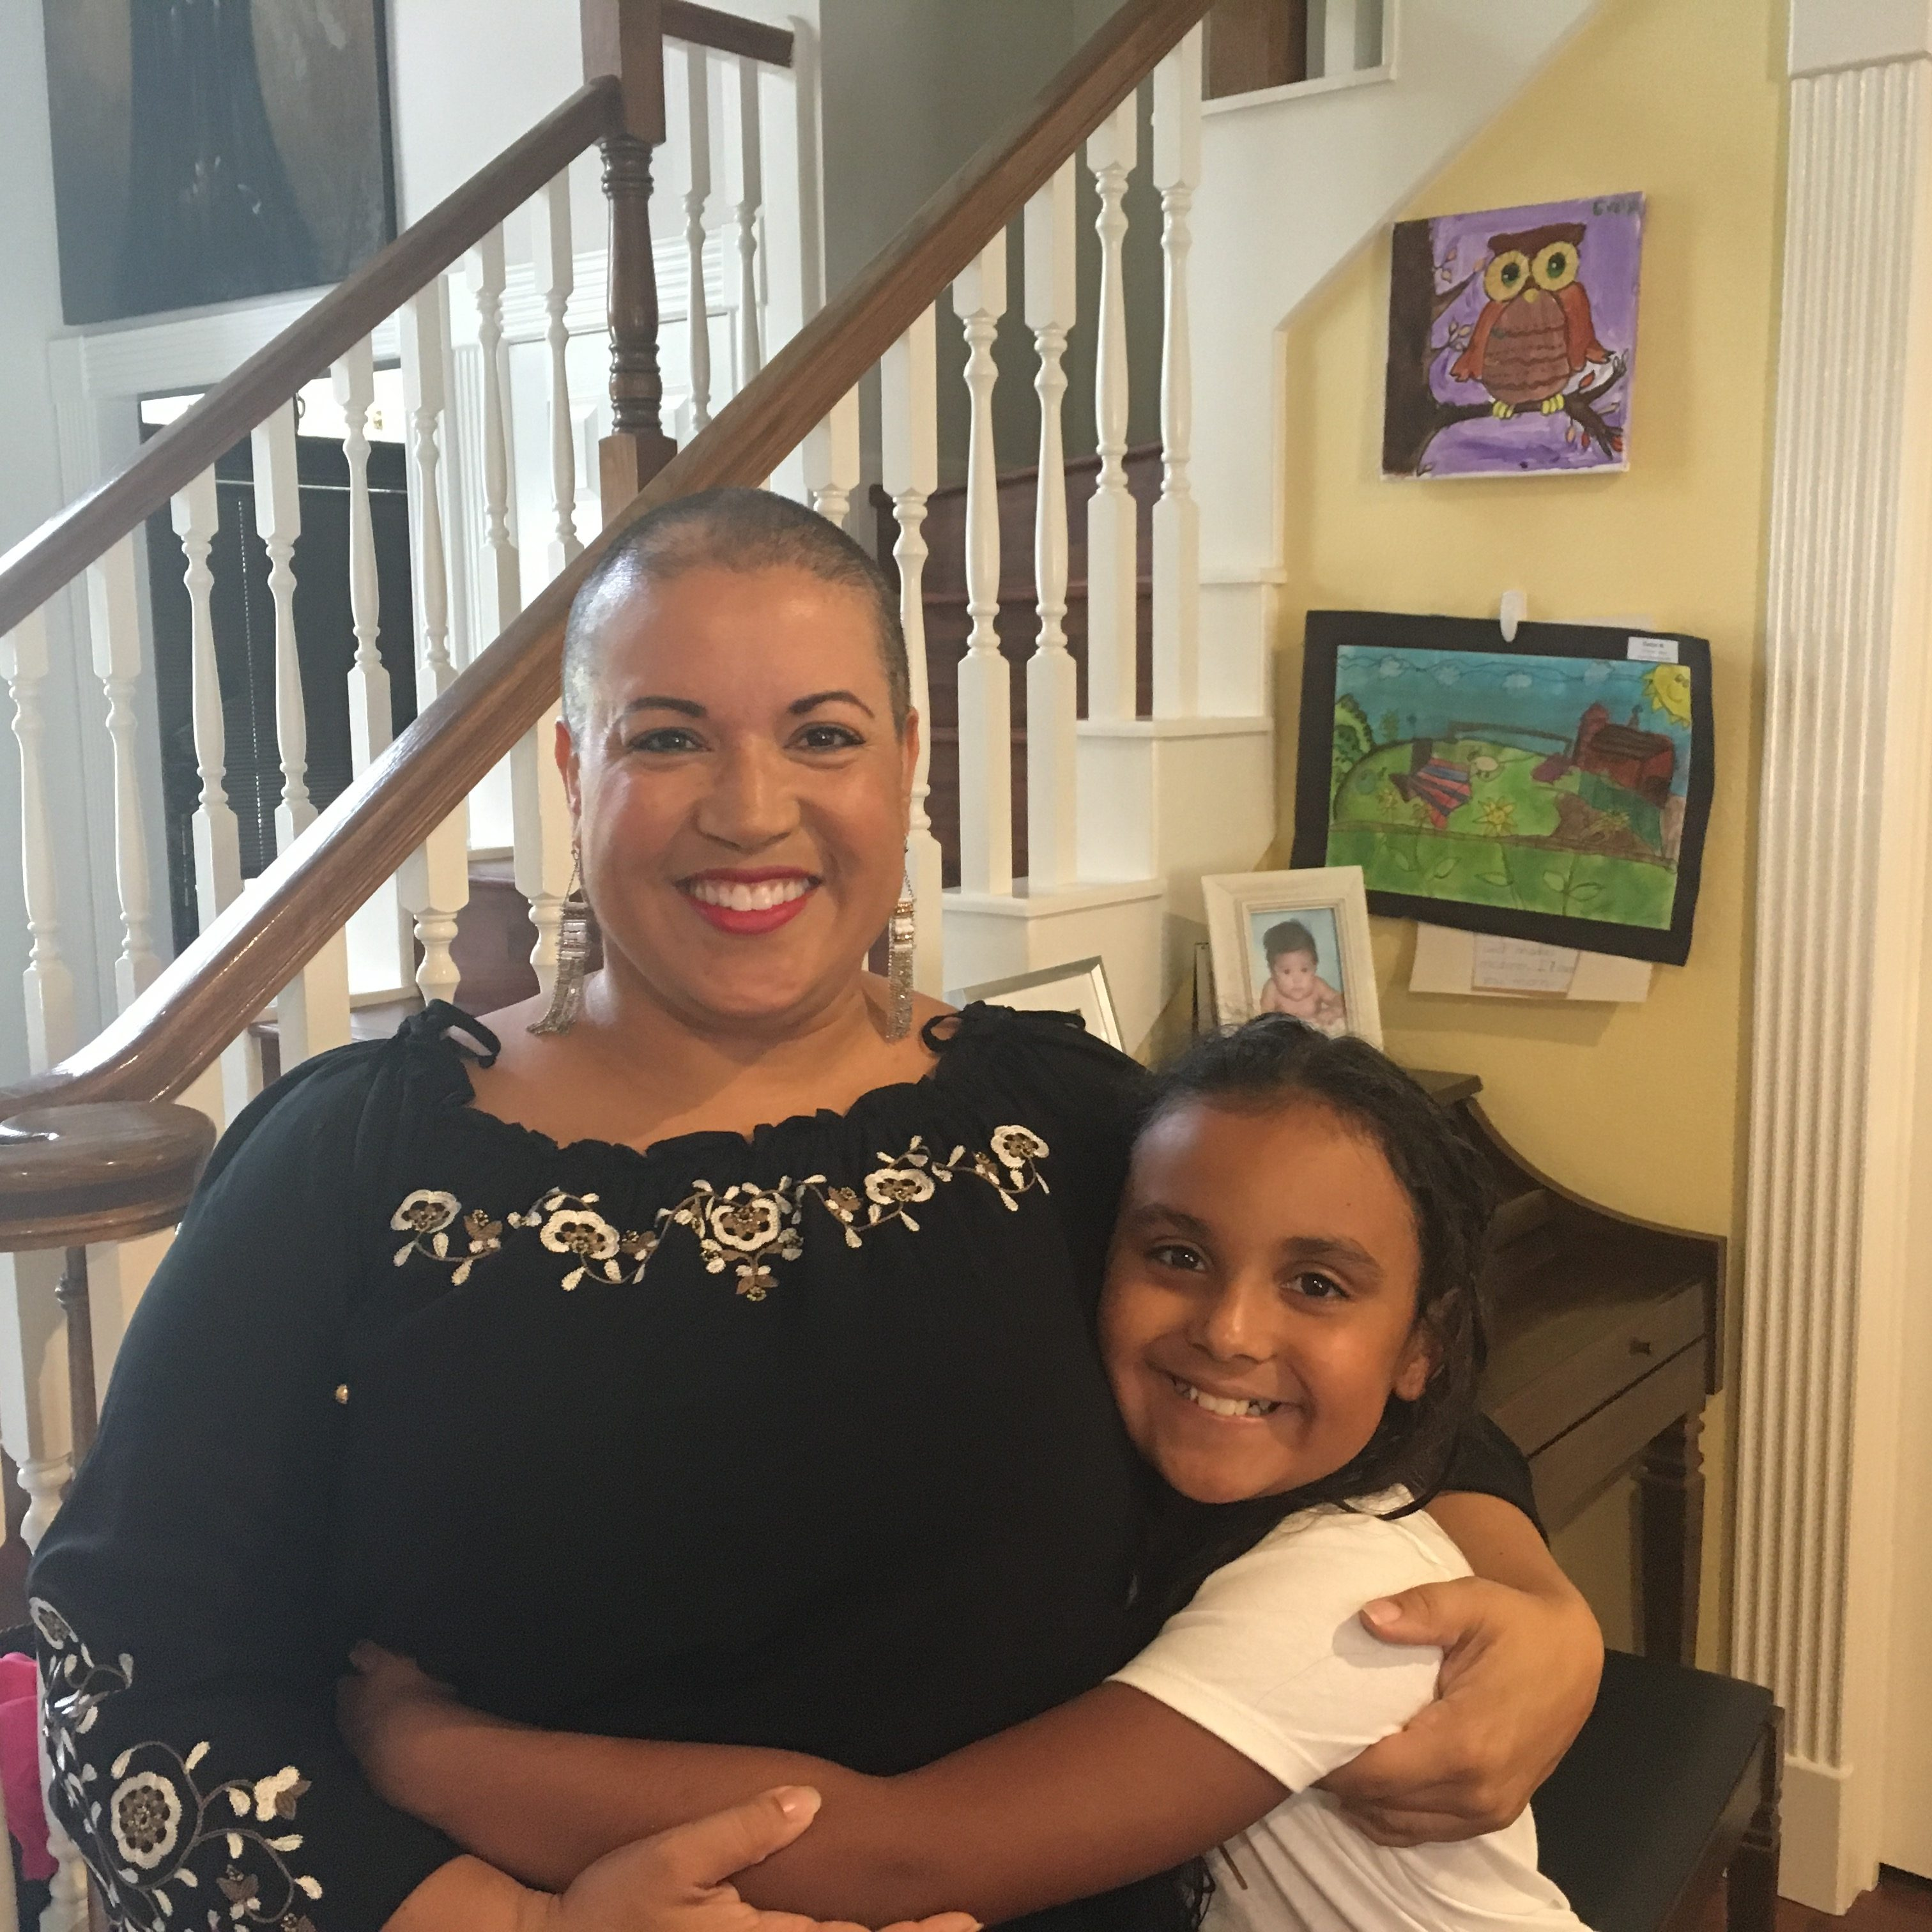 Cancerwise blog post: Breast cancer survivor helps daughter cope with new of her diagnosis and treatment